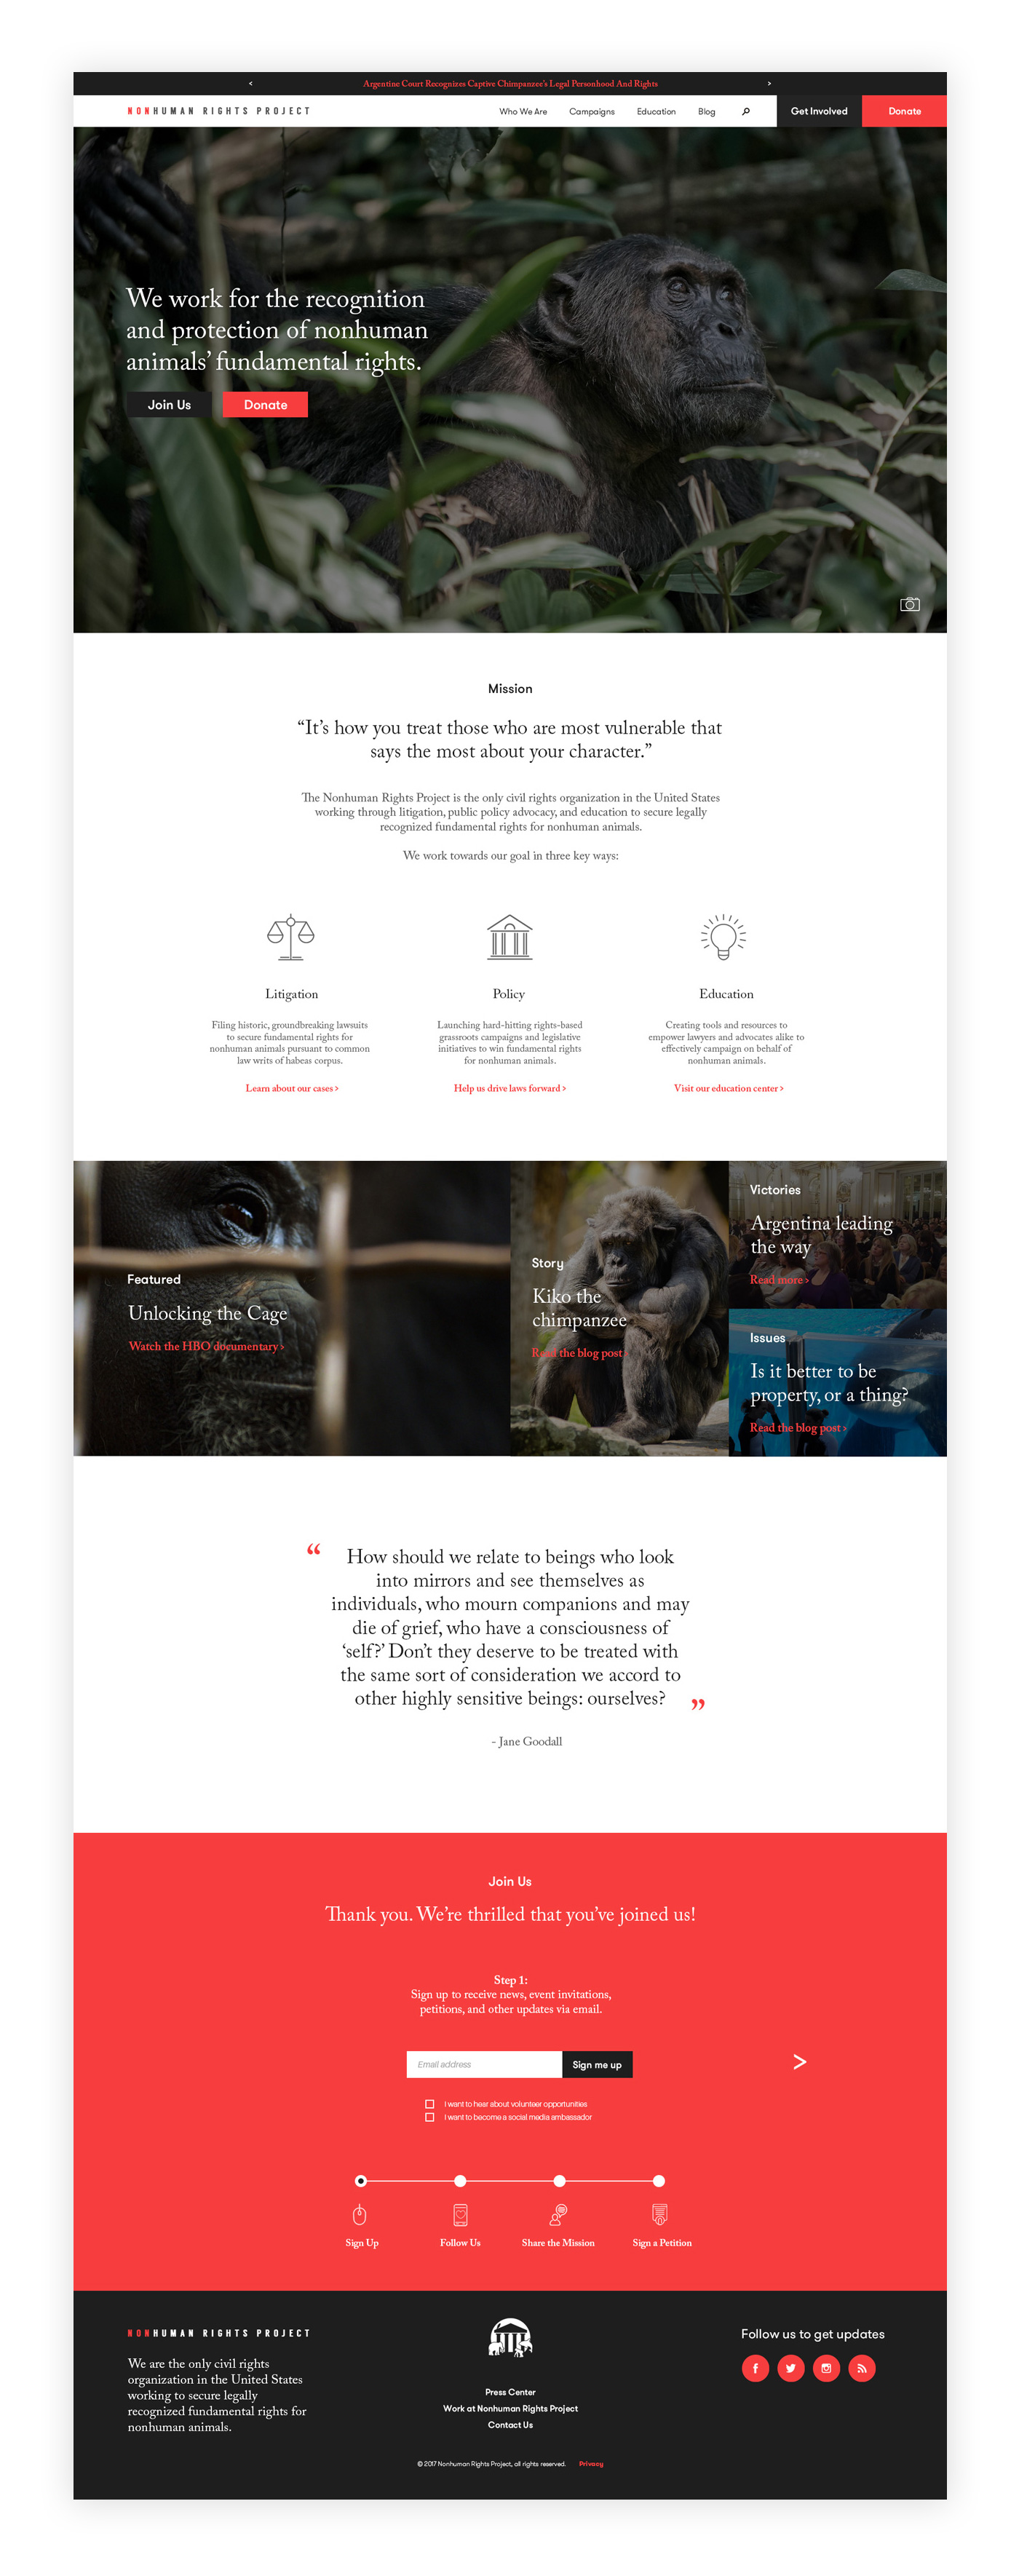 nonprofit-homepage-design-nonhuman-rights